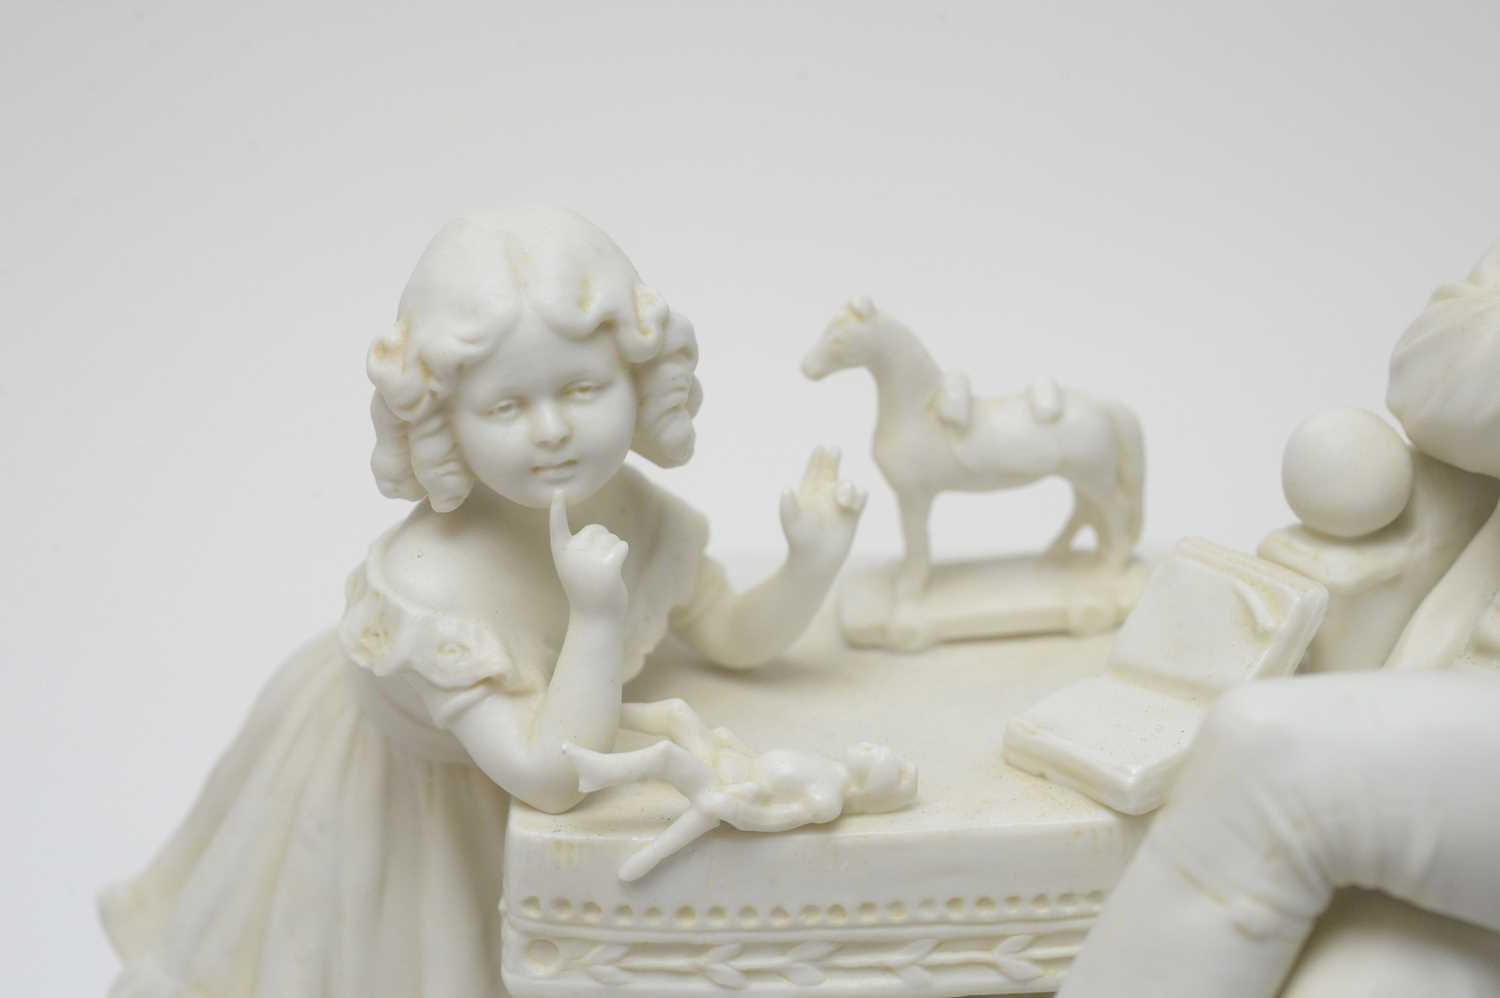 Scheibe-Alsbach biscuit figure Napoleon - Image 3 of 4